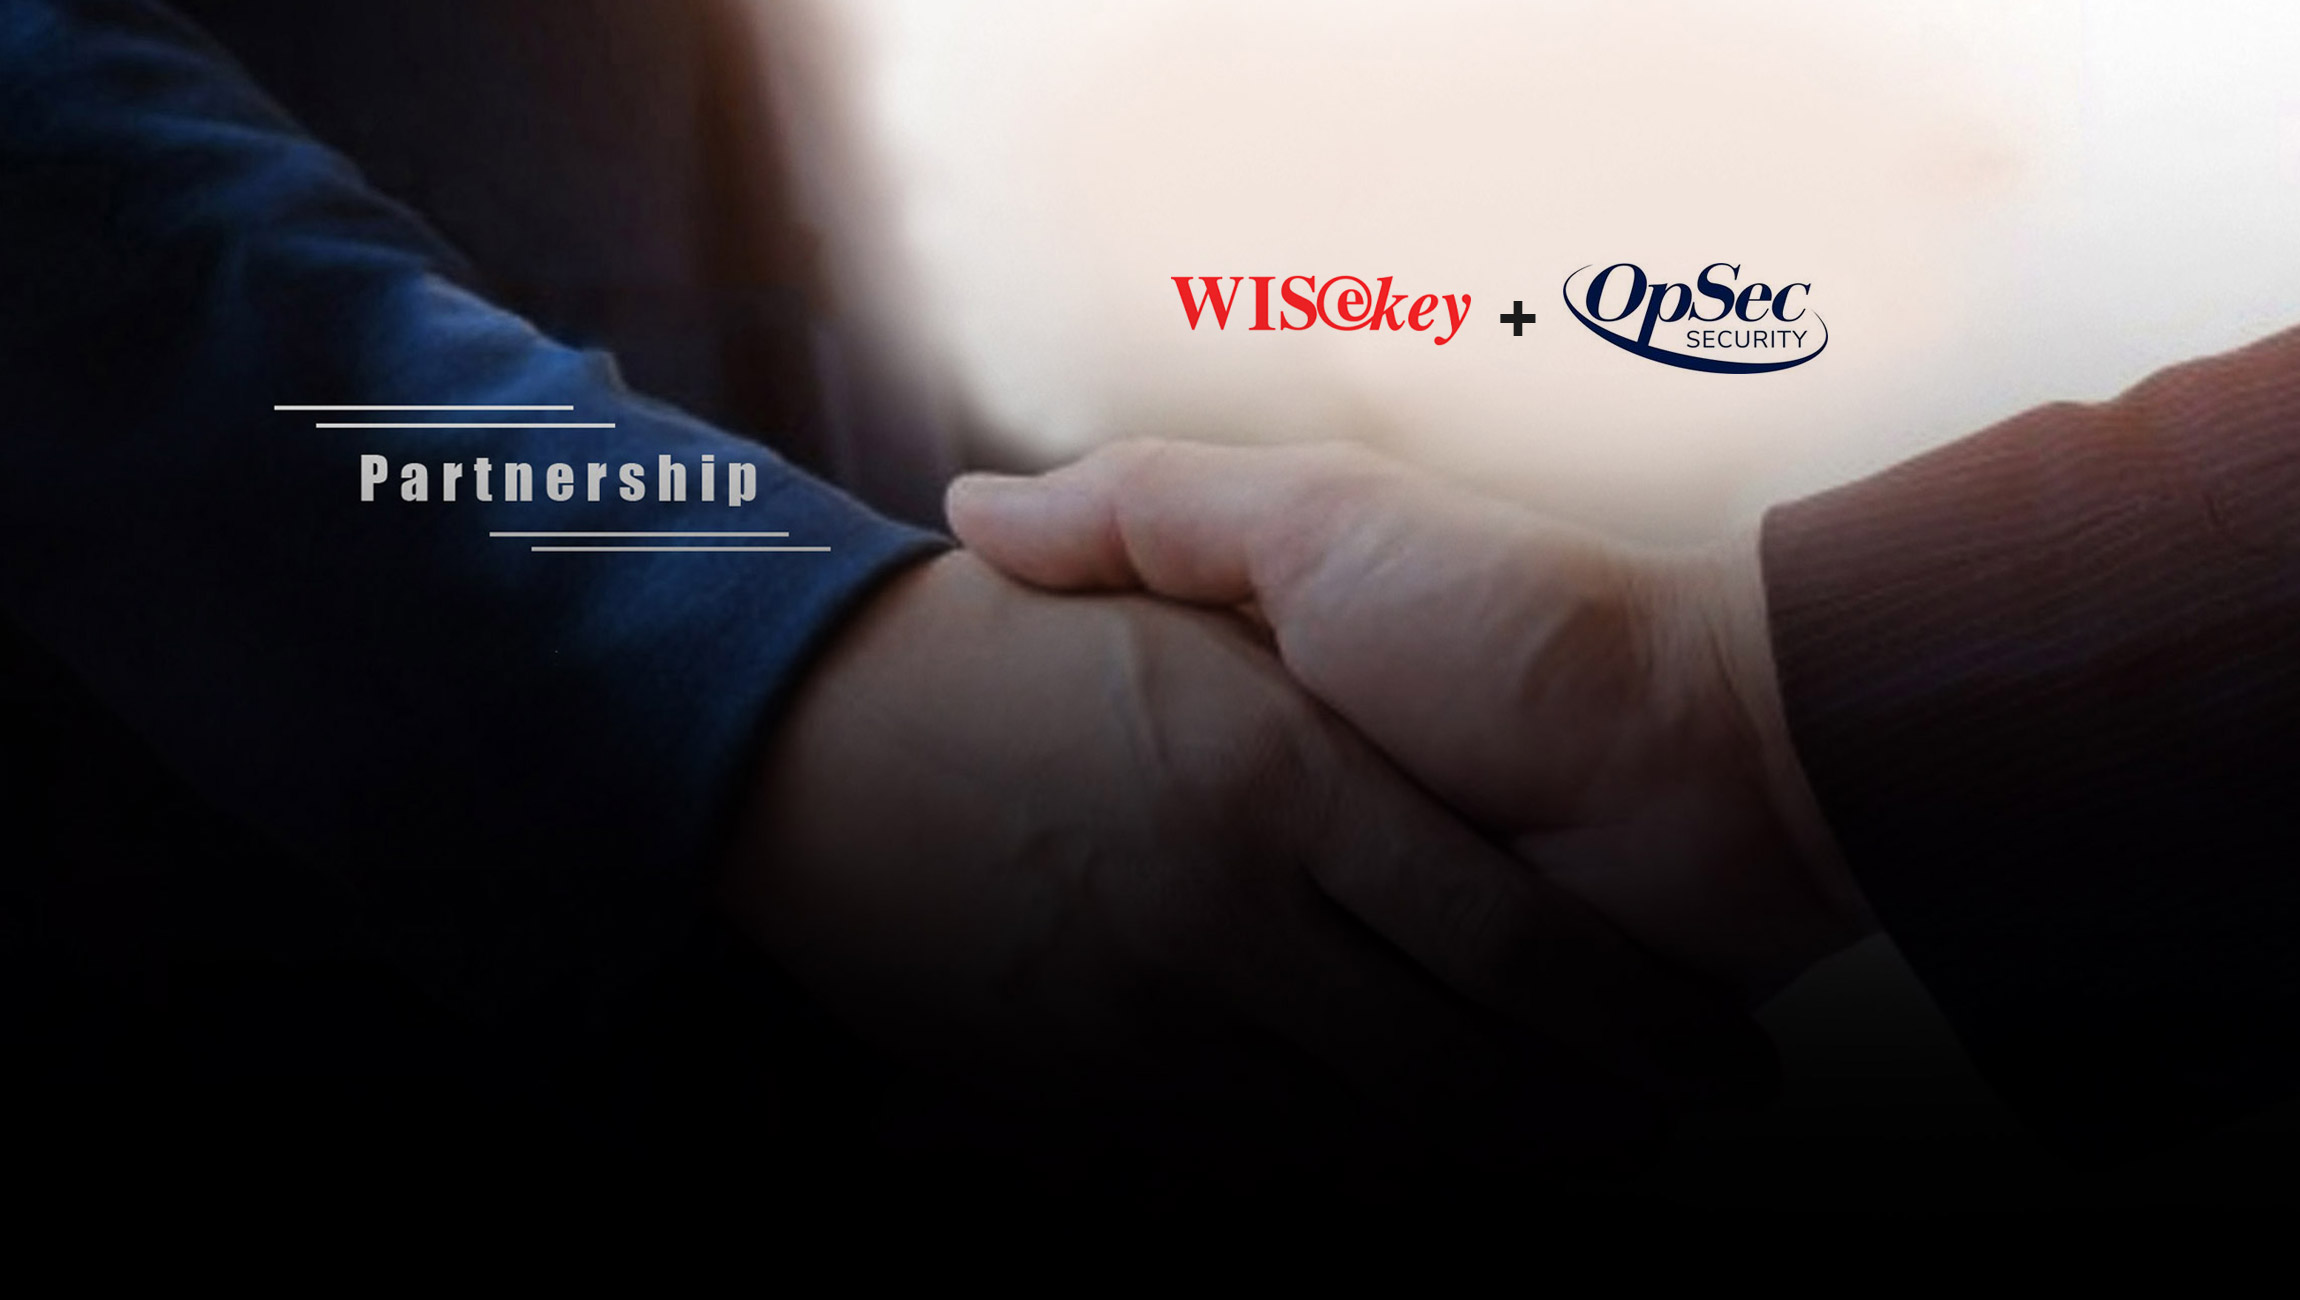 WISeKey and OpSec Security Partnership Establishes Trust Between Brands and their Customers through Improved Customer Engagement